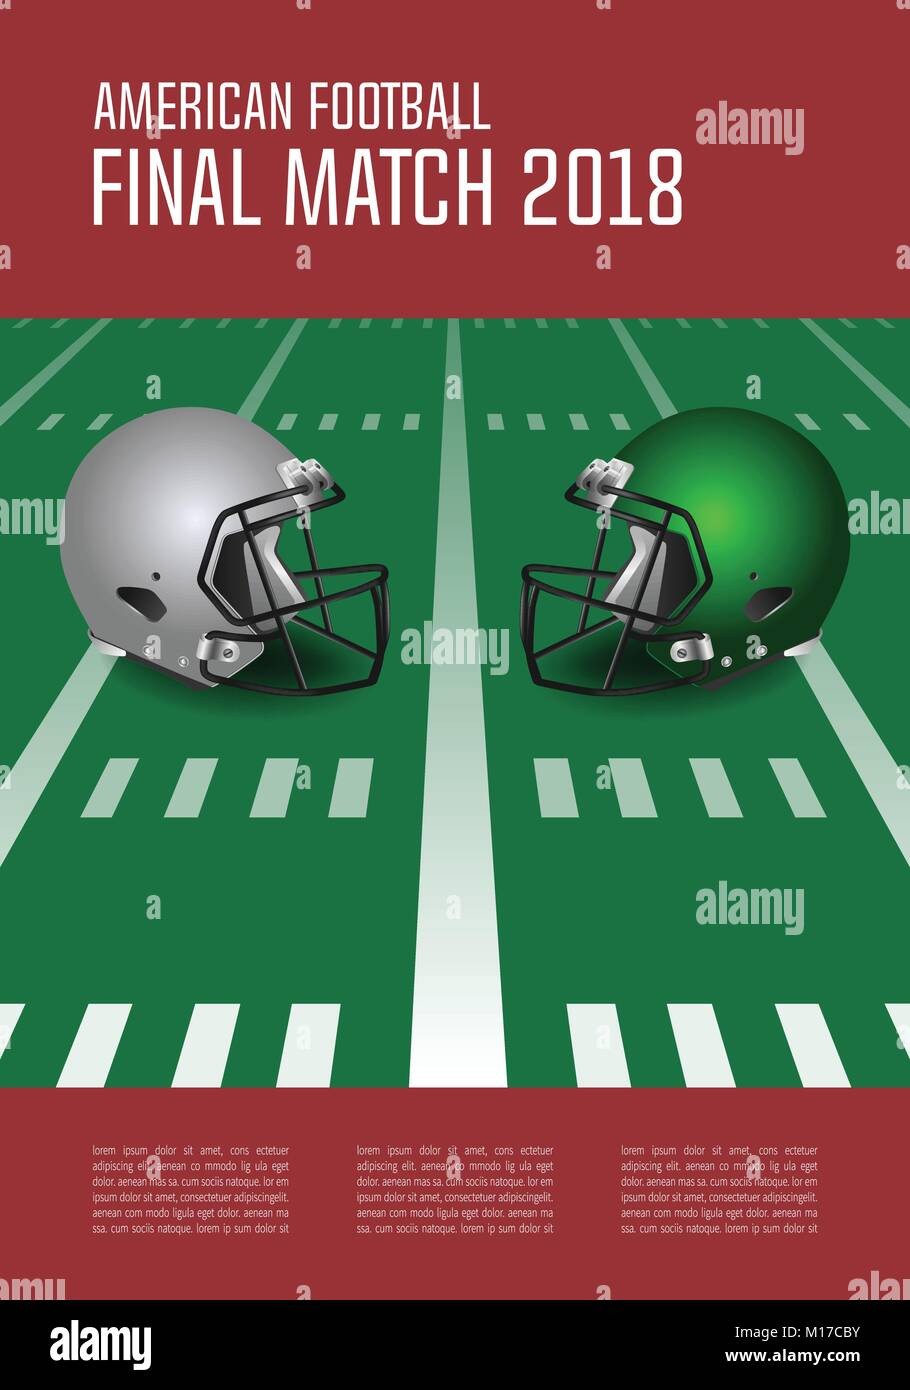 American football final match poster concept. Silver, green Helmets and football on field background. Vector Illustration. - Stock Vector